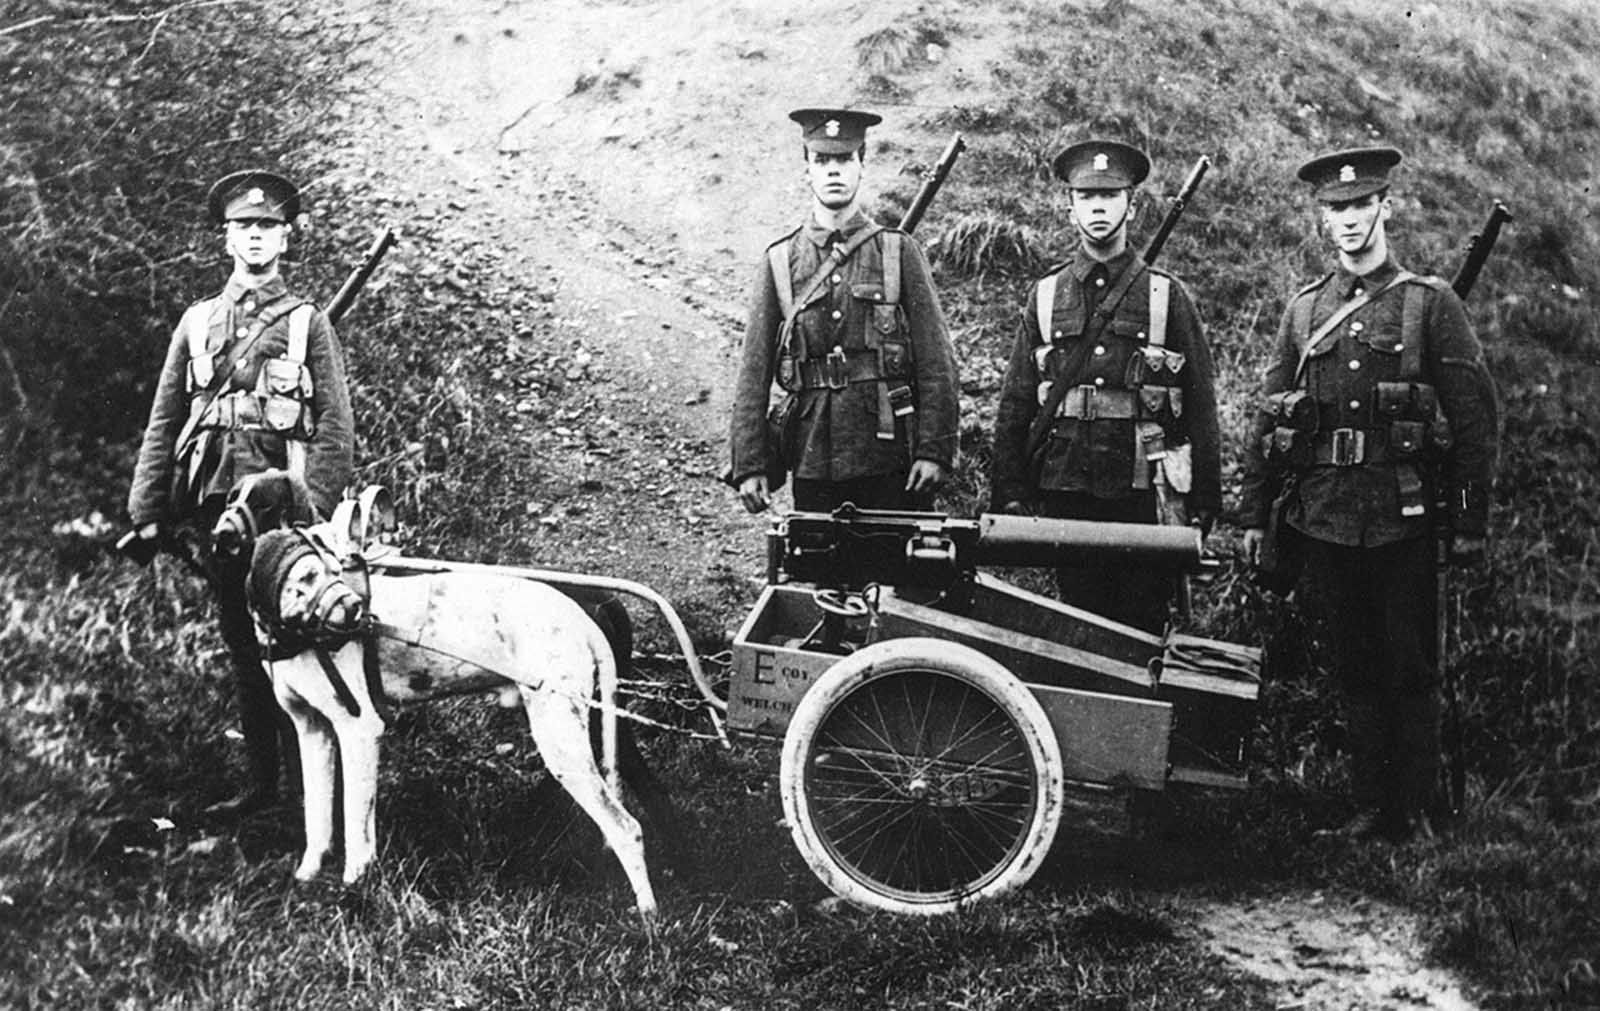 Harnessed dogs pull a British Army machine gun and ammo, 1914. These weapons could weigh as much as 150 pounds.